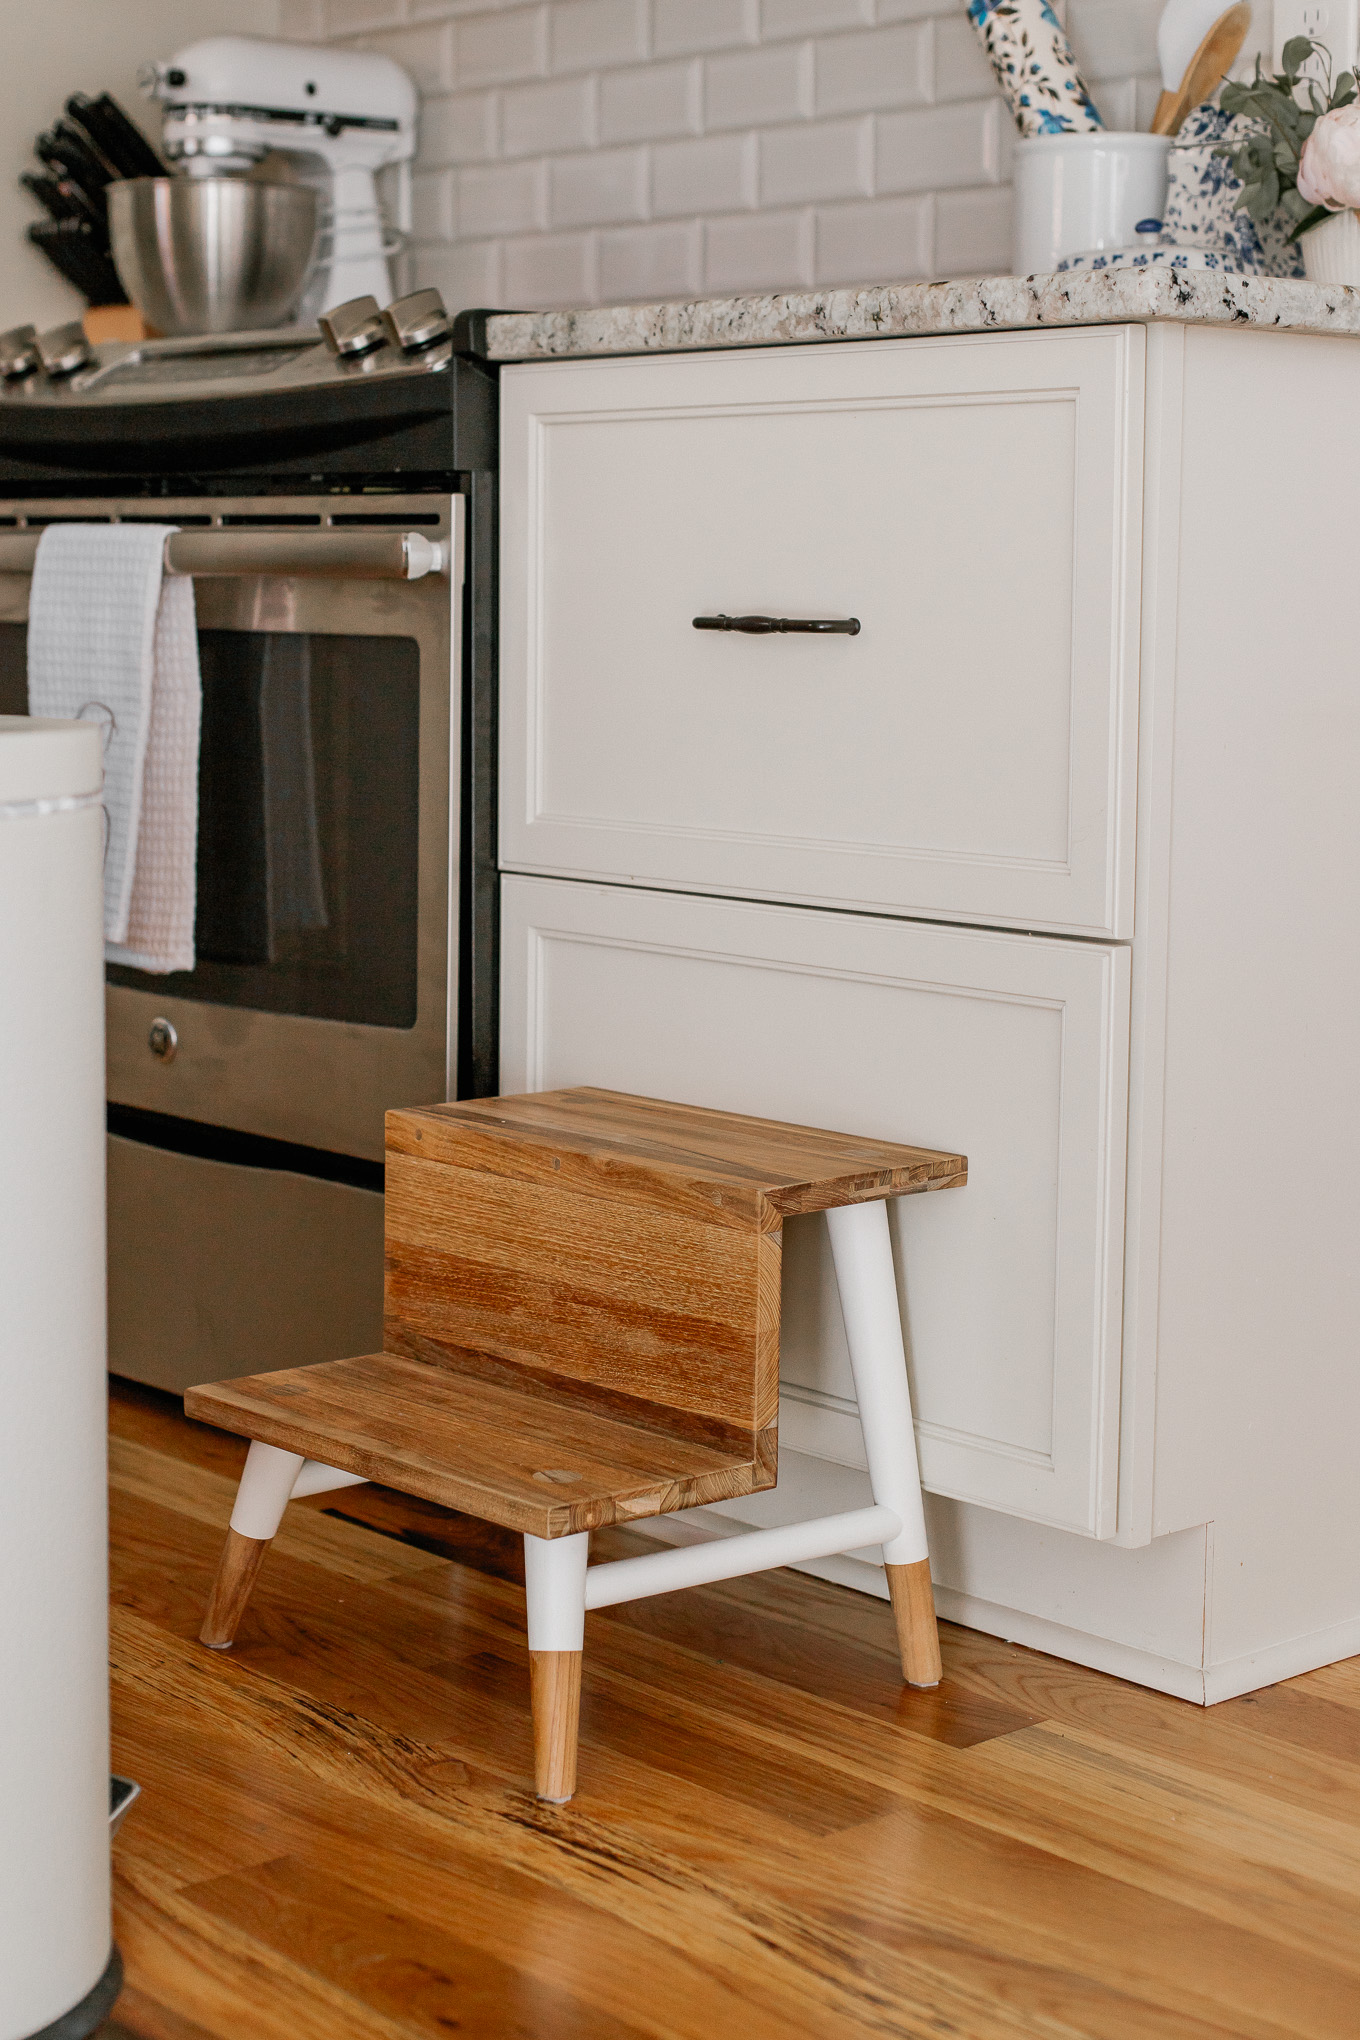 Serena & Lily Thank You Event, Black Friday Sales | Teak Stool for Kitchen and Bathroom | Louella Reese